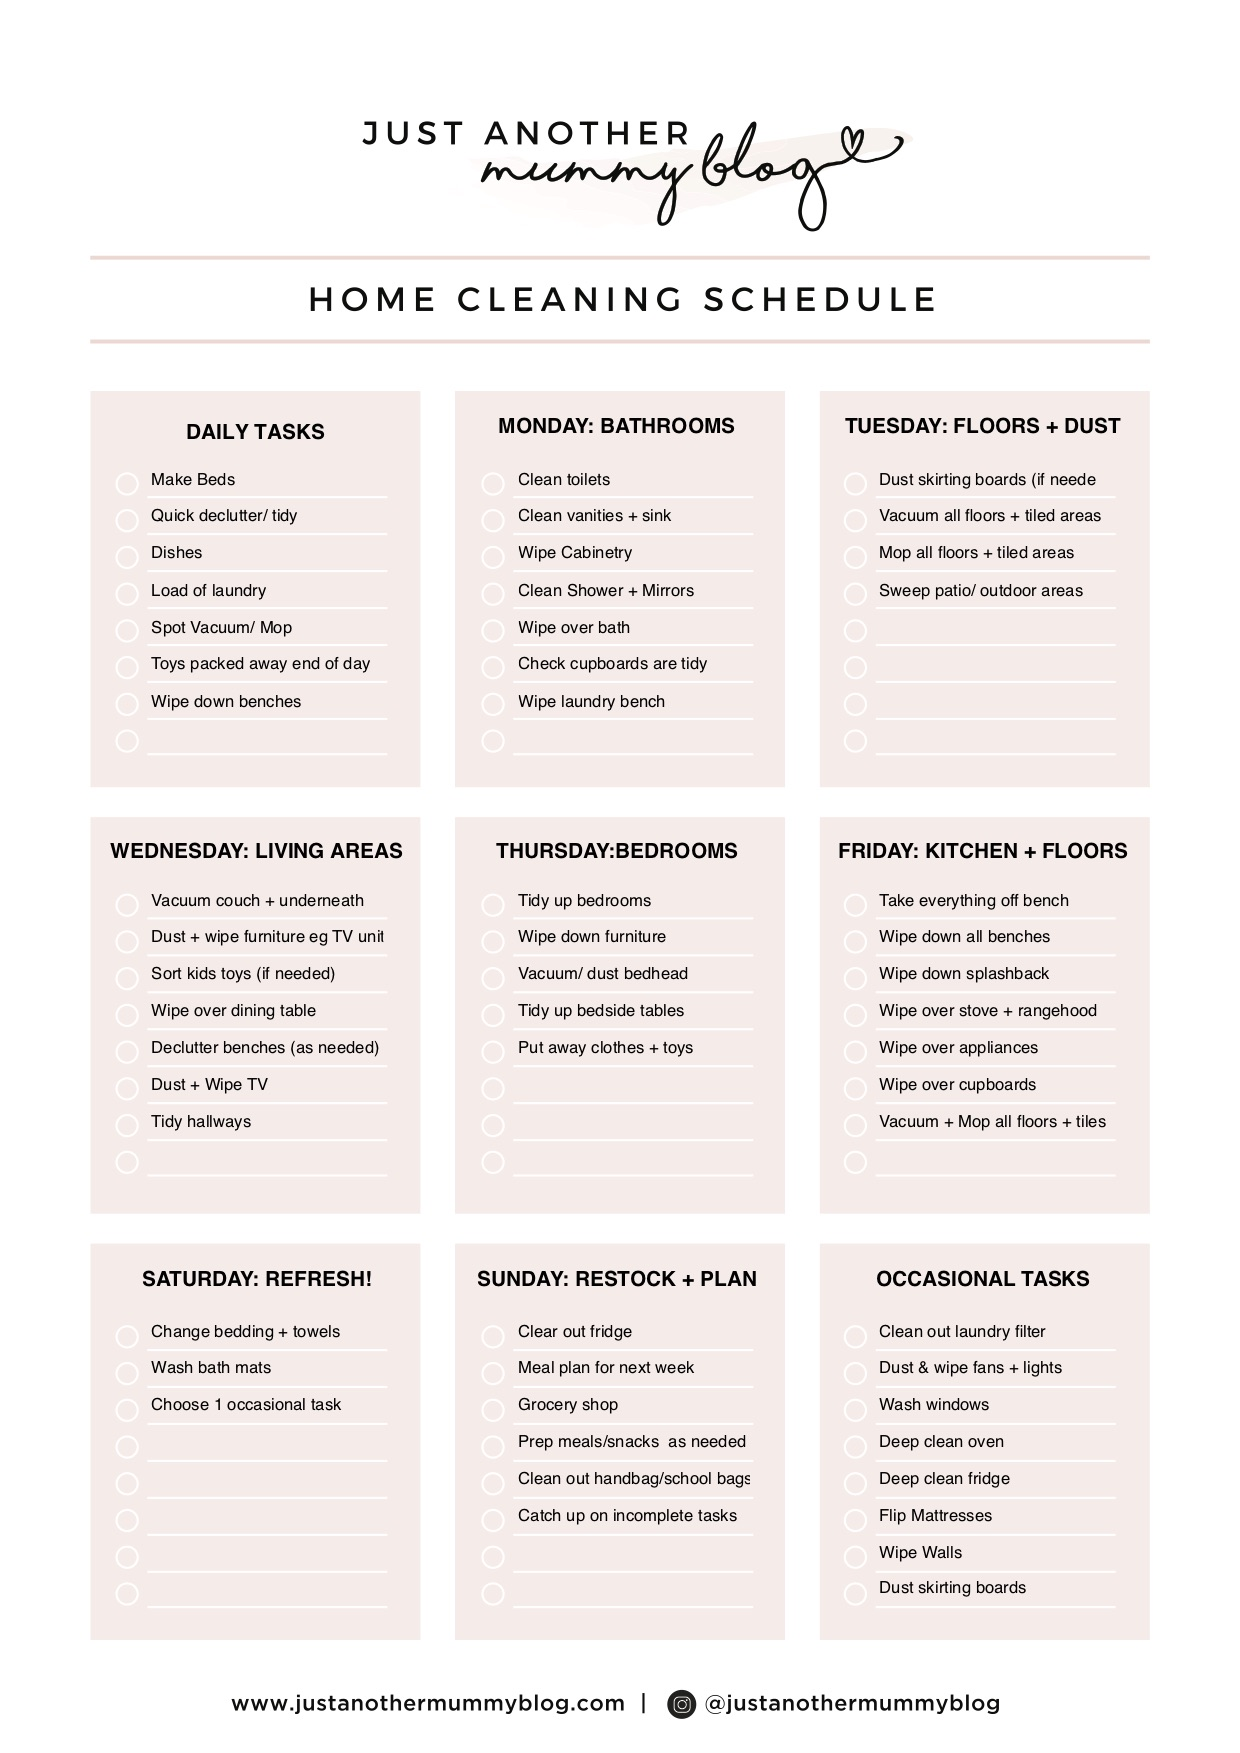 My Cleaning Schedule for the home - Just Another Mummy Blog